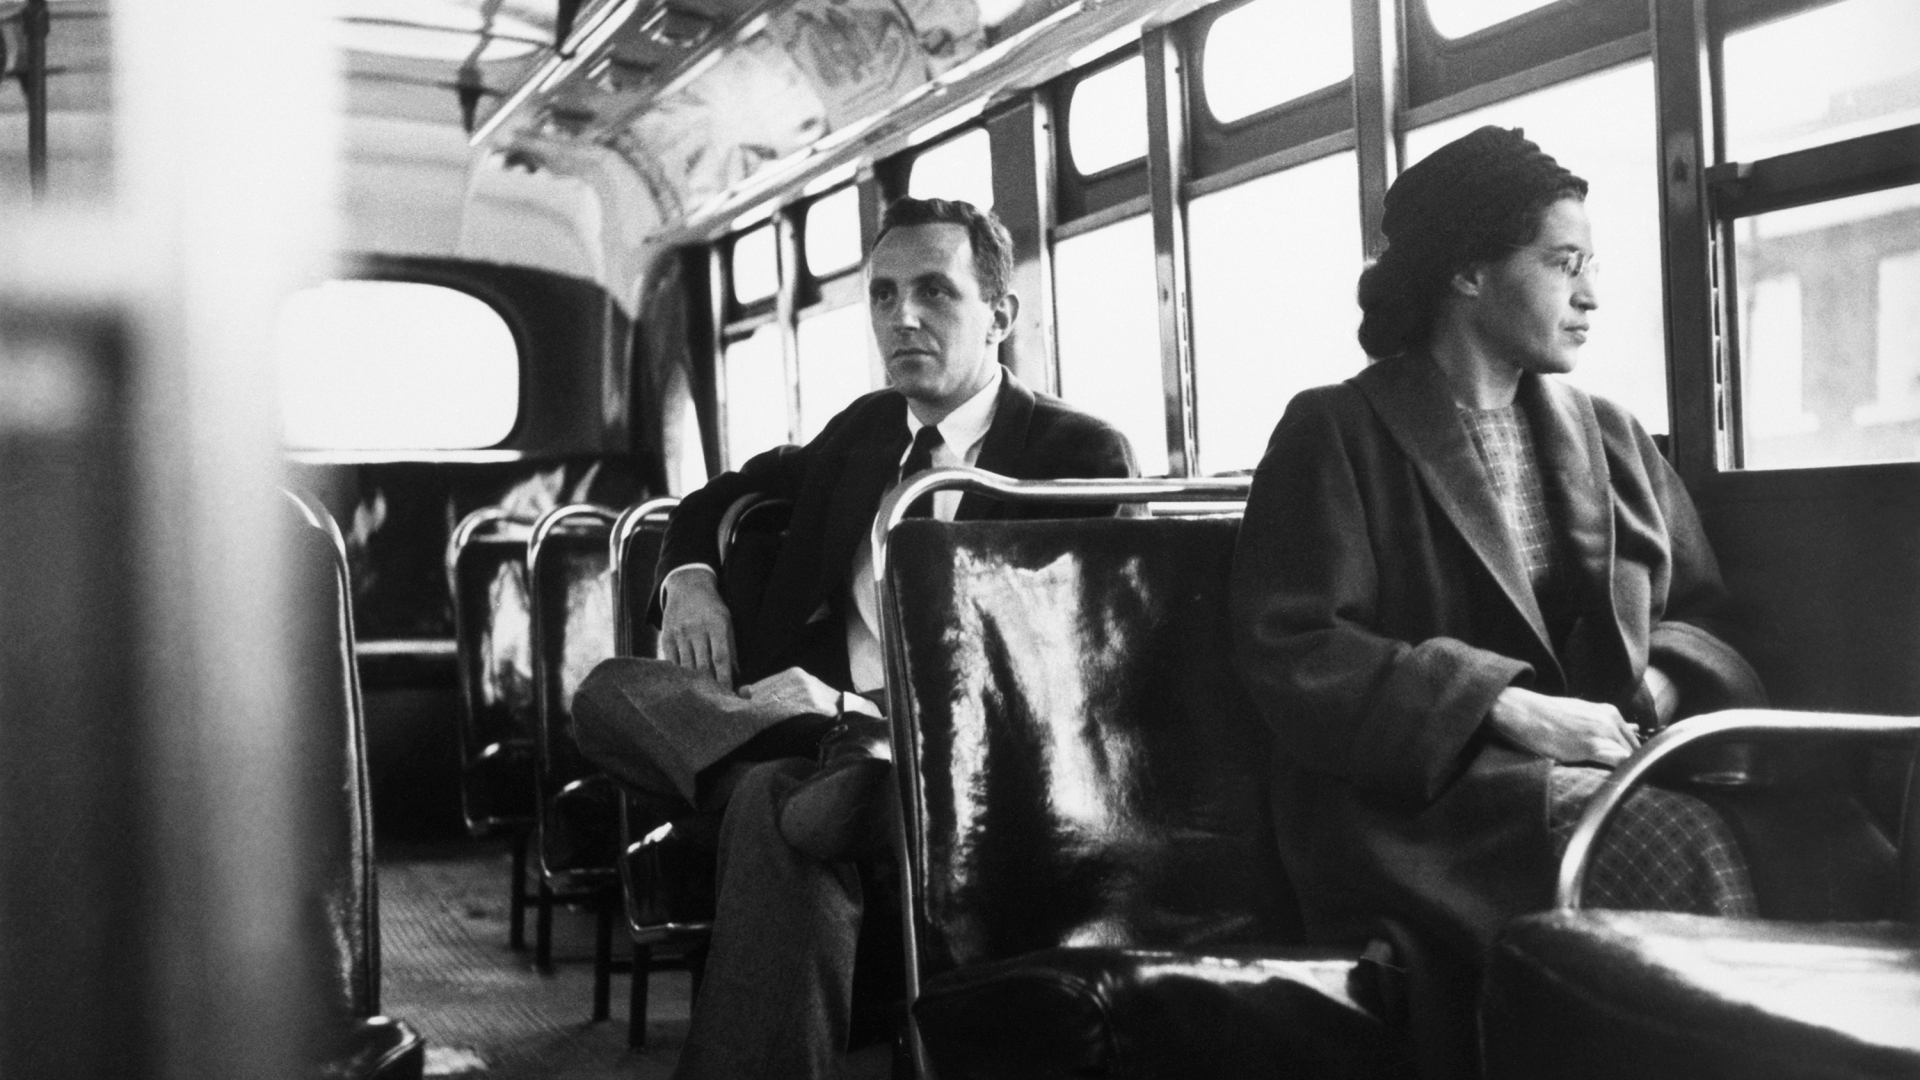 Rosa Parks sitting in the front of a bus in Montgomery, Alabama, after the Supreme Court ruled segregation illegal on the city bus system on December 21st, 1956. (Credit: Bettmann Archive/Getty Images)